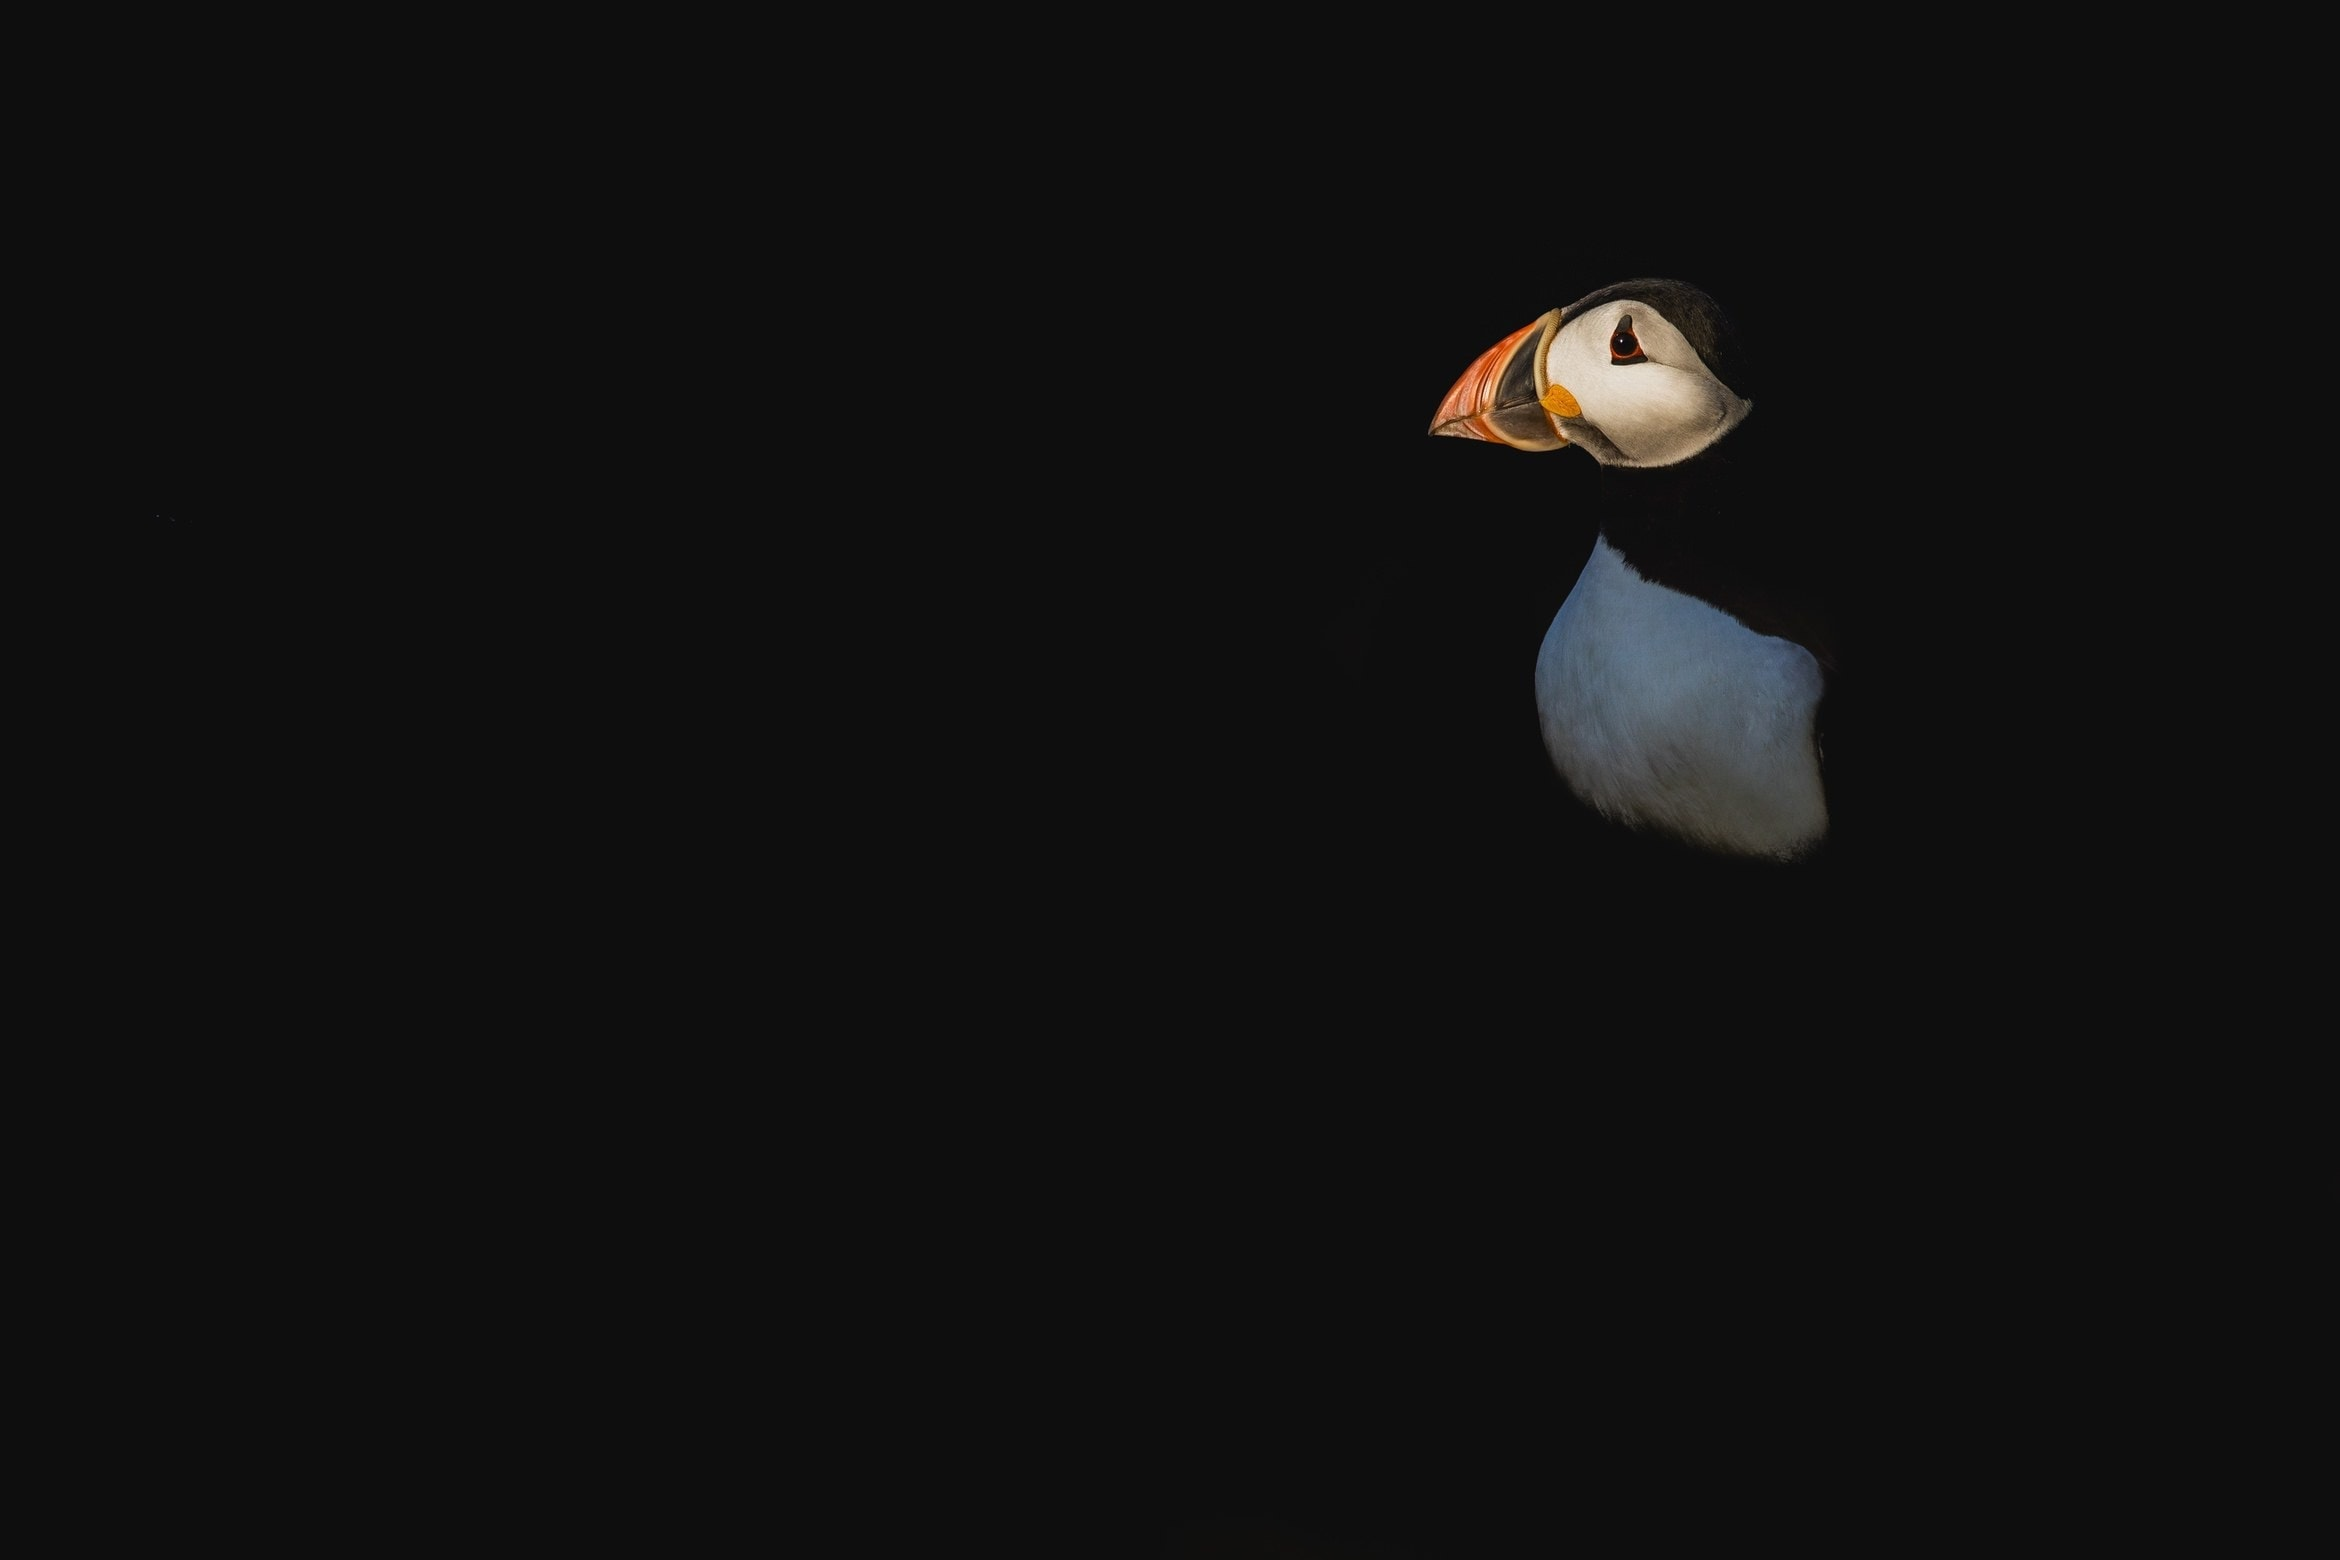 An Atlantic Puffin Emerges From The Darkness   Photographed During The NaturesLens Atlantic Puffins Of Skomer Island Photography Holiday